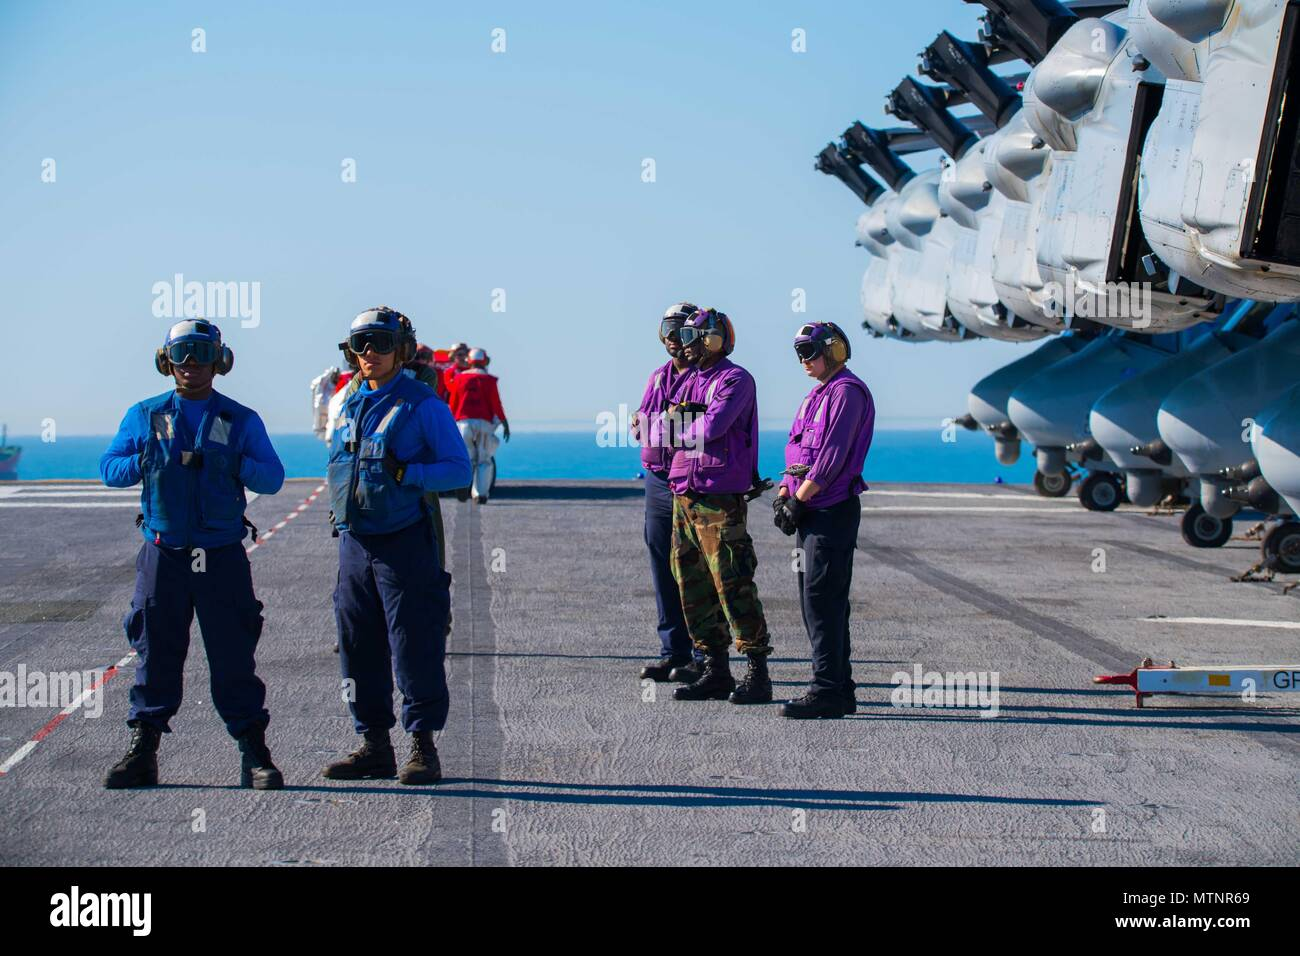 170113-N-AV754-074 ATLANTIC OCEAN (Jan. 13, 2017) Sailors conduct flight operations on the flight deck of the amphibious assault ship USS Bataan (LHD 5). The ship is underway conducting Composite Training Unit Exercise (COMPTUEX) in preparation for an upcoming deployment. (U.S. Navy photo by Mass Communication Specialist 3rd Class Evan Thompson/Released) Stock Photo